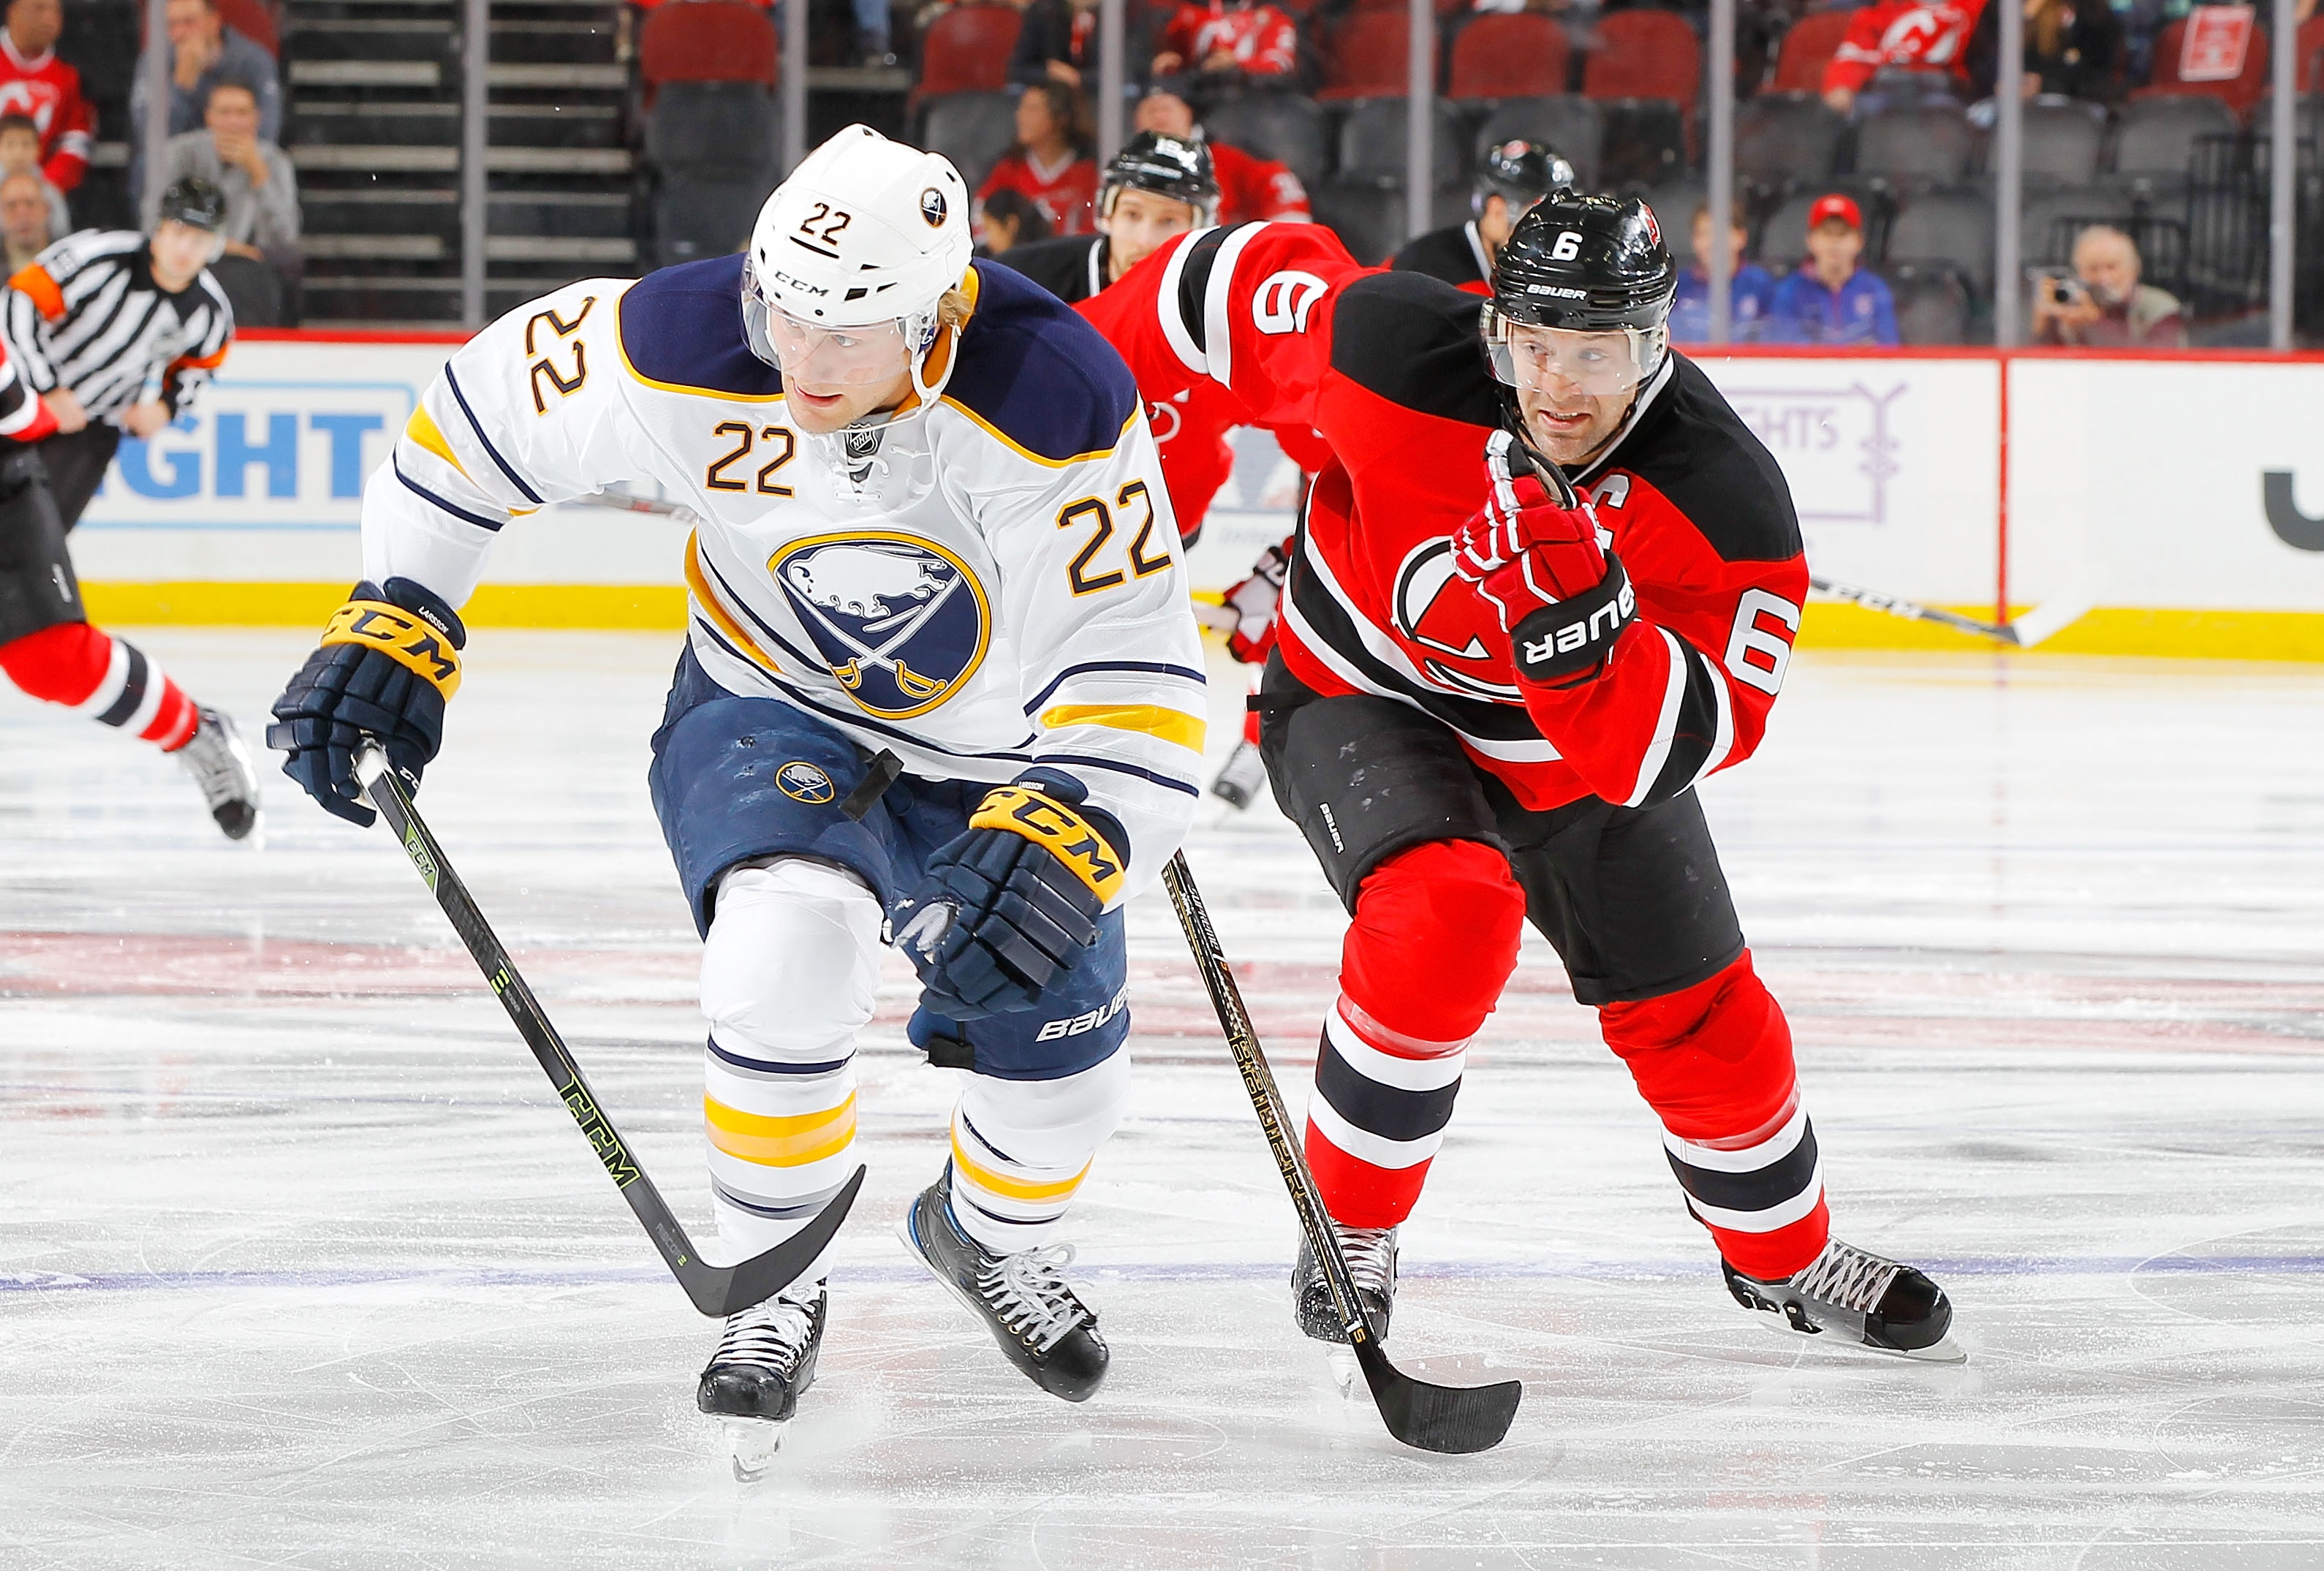 Sabres center Johan Larsson has two goals and no assists in the last 16 games. (Getty Images)